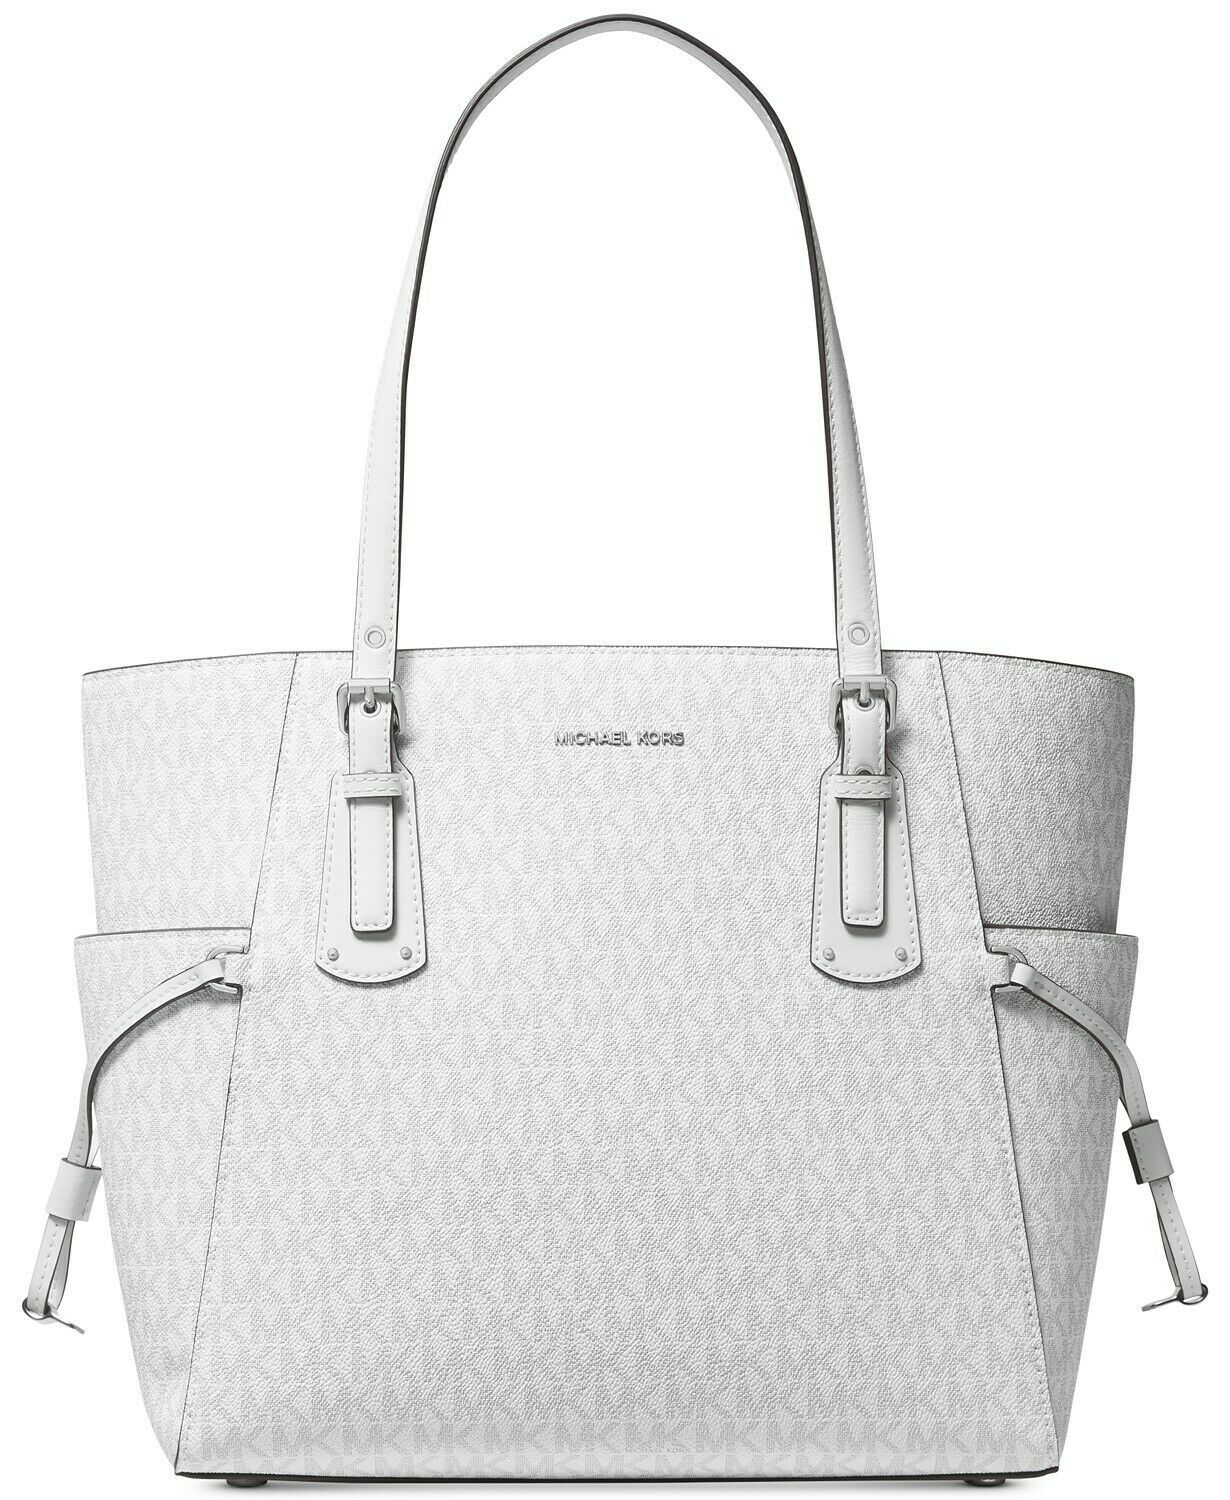 NWT MICHAEL KORS VOYAGER SIGNATURE EAST WEST TOTE BRIGHT WHITE